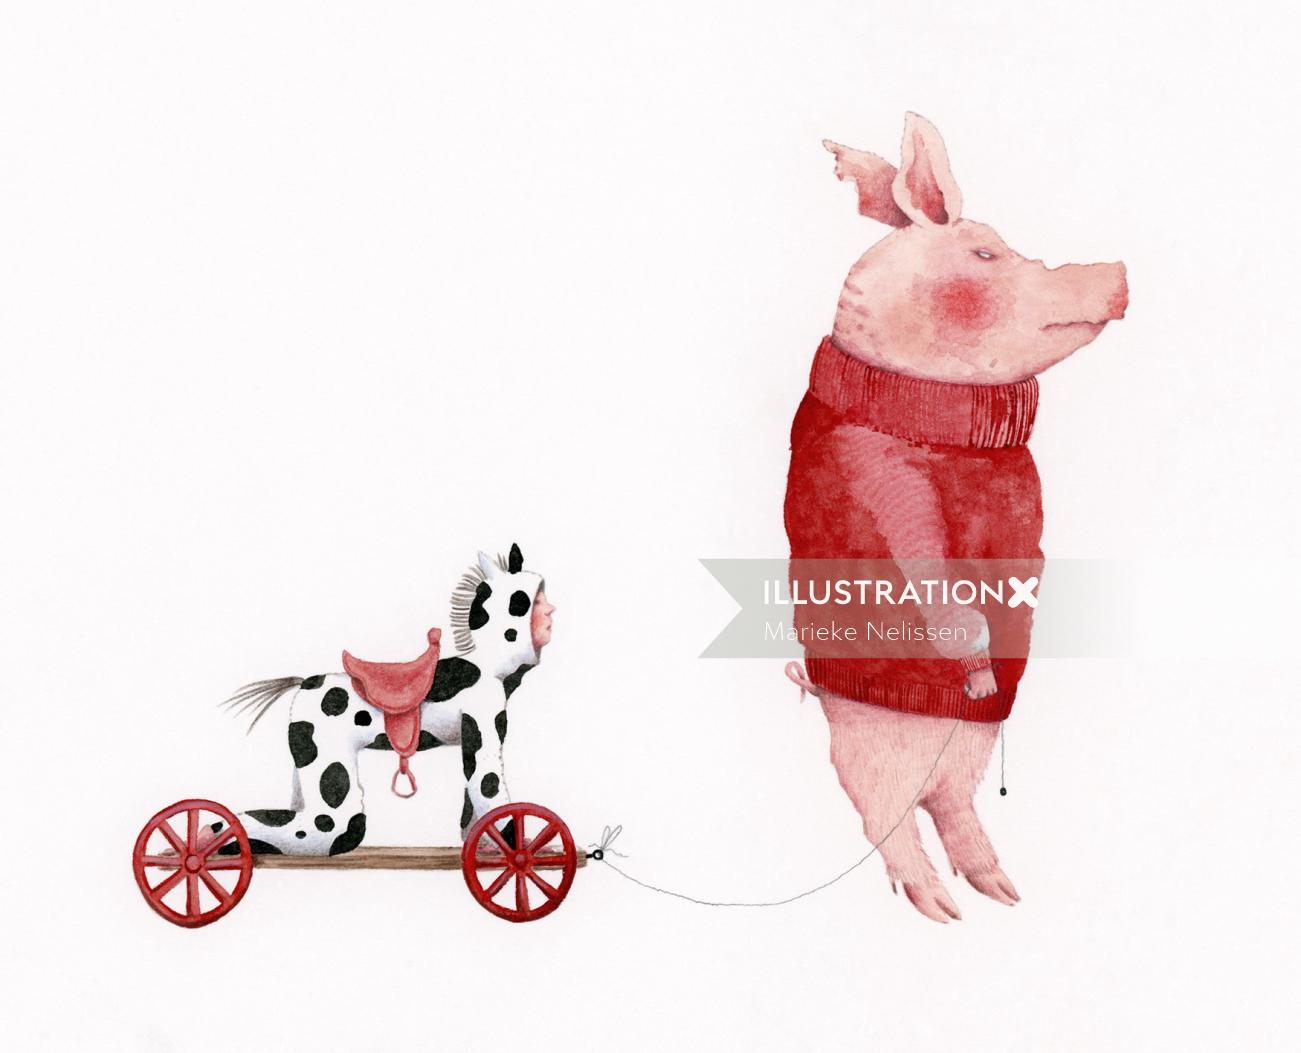 Pig with a child that is dressed up like a toy horse.